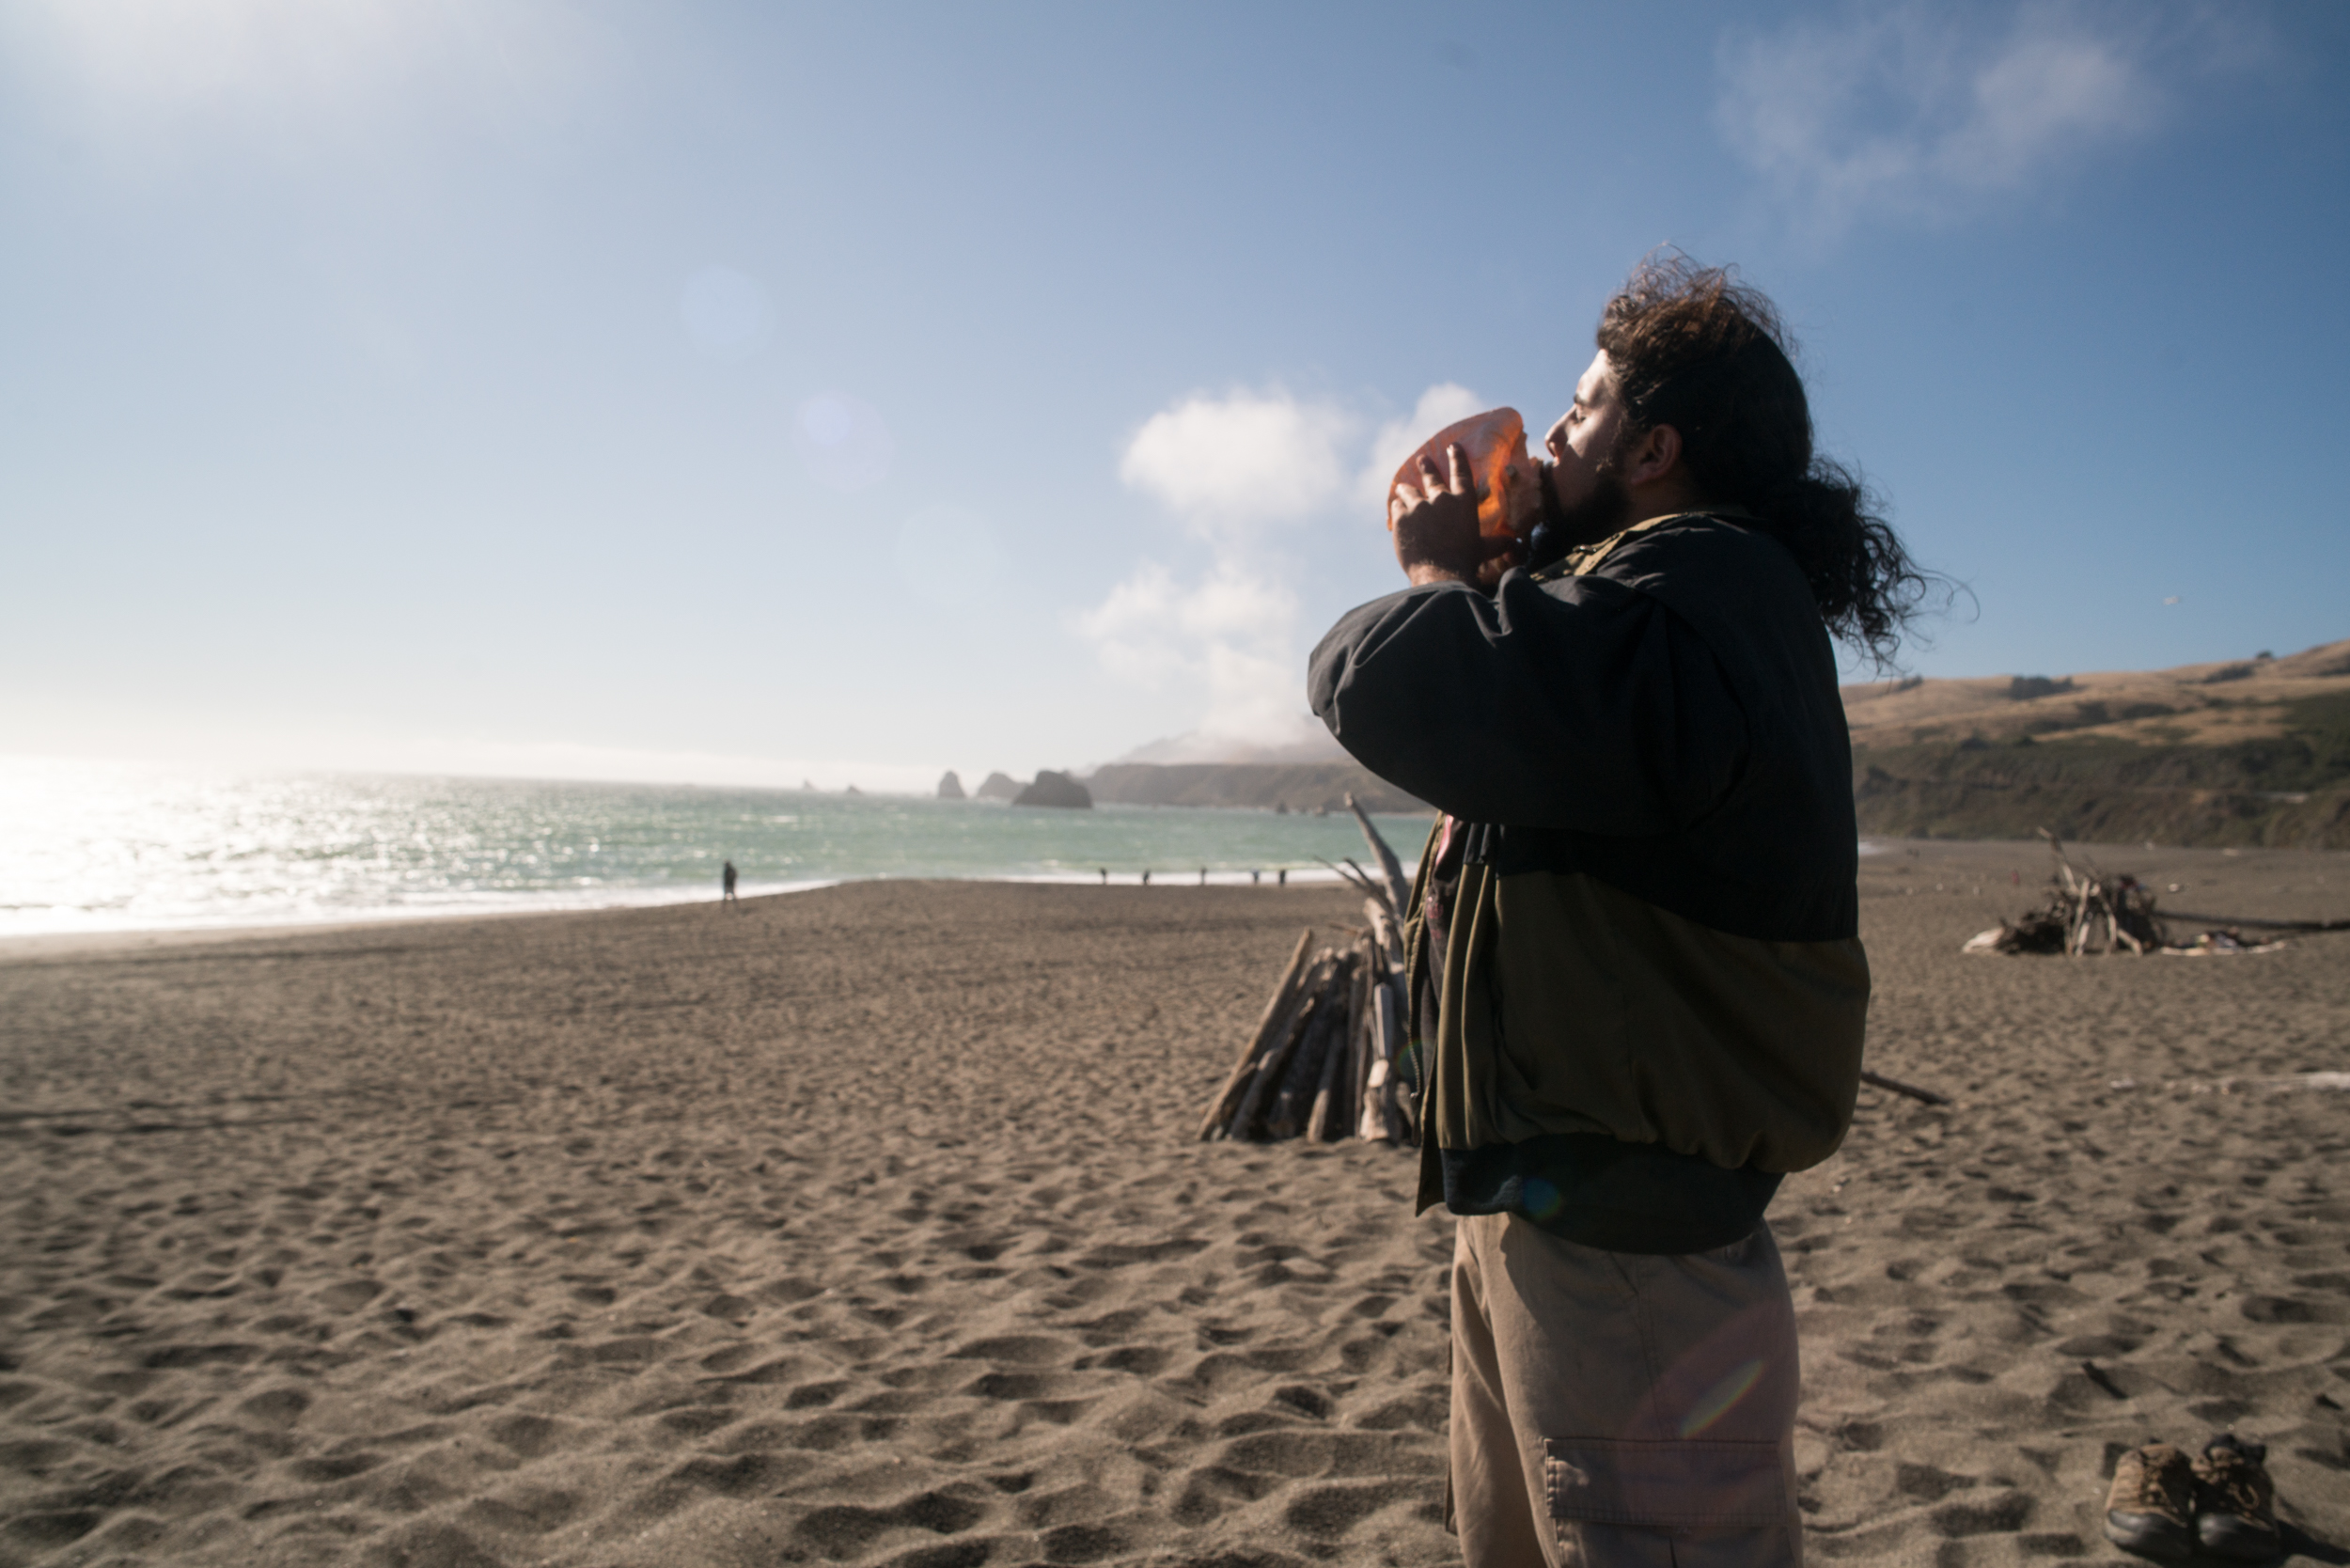 A young man from the Guardians of the Waters Native Youth program blows a conch shell to greet the Pacific Ocean